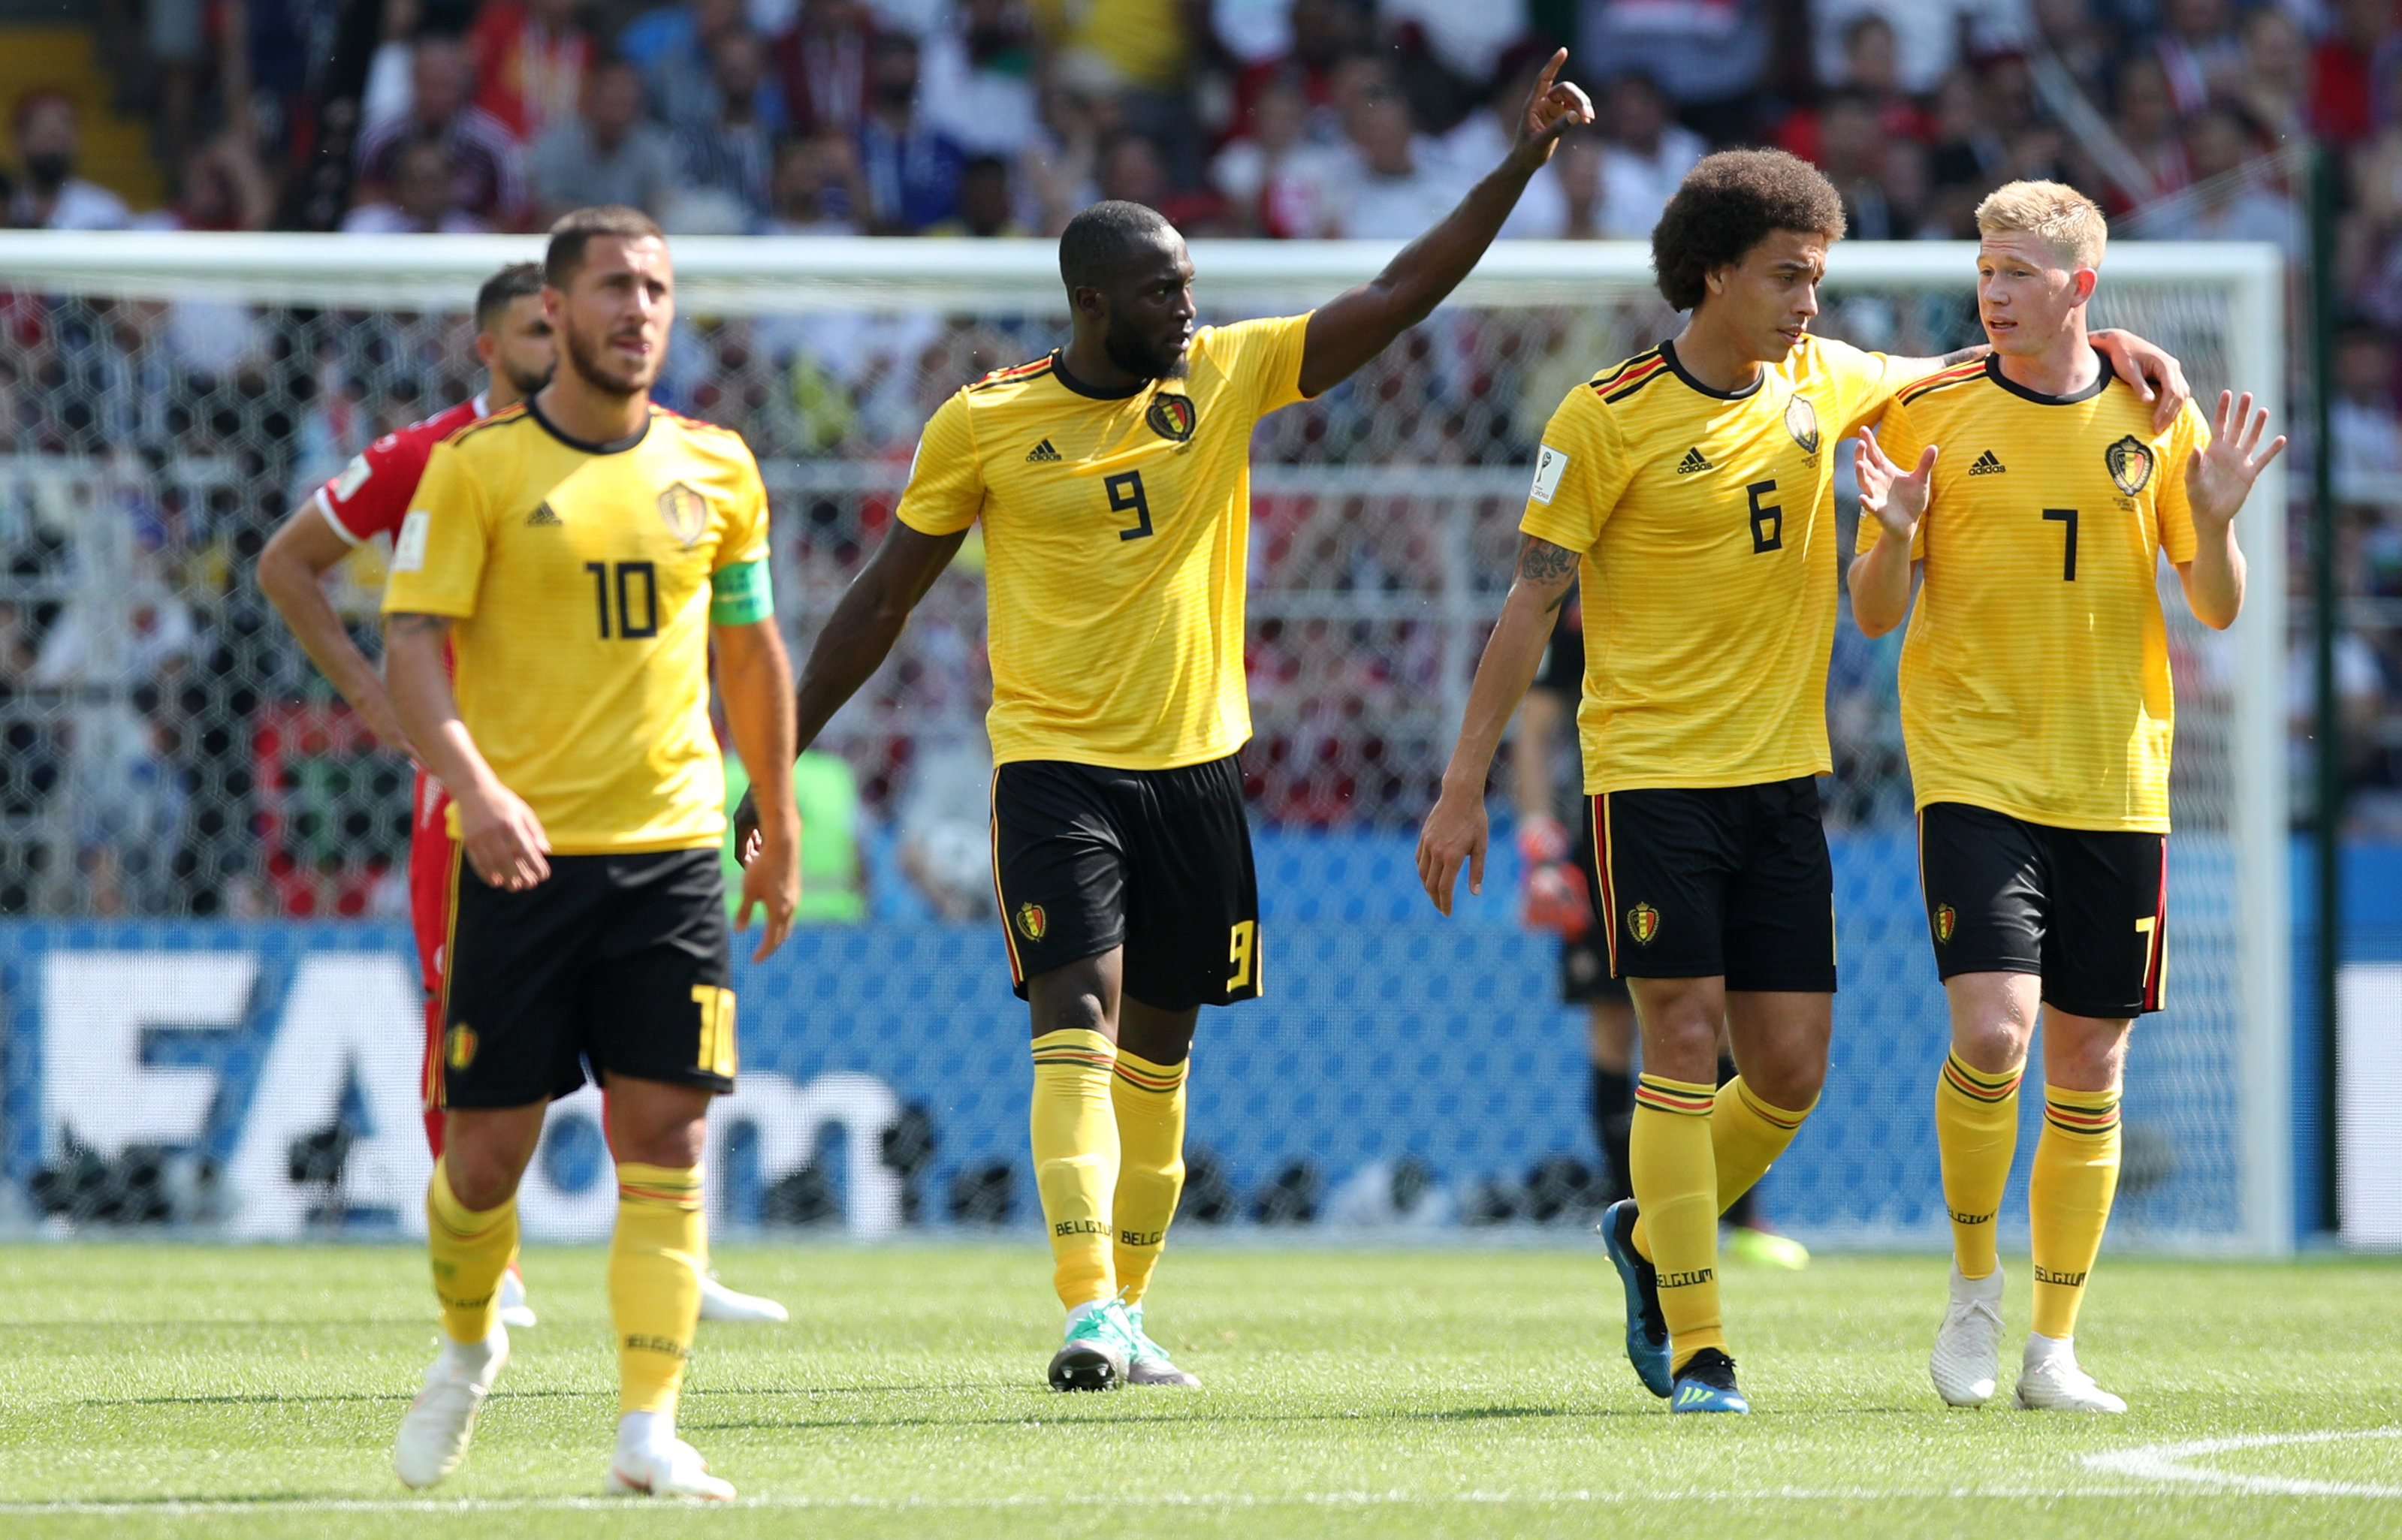 Soccer Football - World Cup - Group G - Belgium vs Tunisia - Spartak Stadium, Moscow, Russia - June 23, 2018   Belgium's Romelu Lukaku celebrates scoring their second goal with team mates Photo: REUTERS